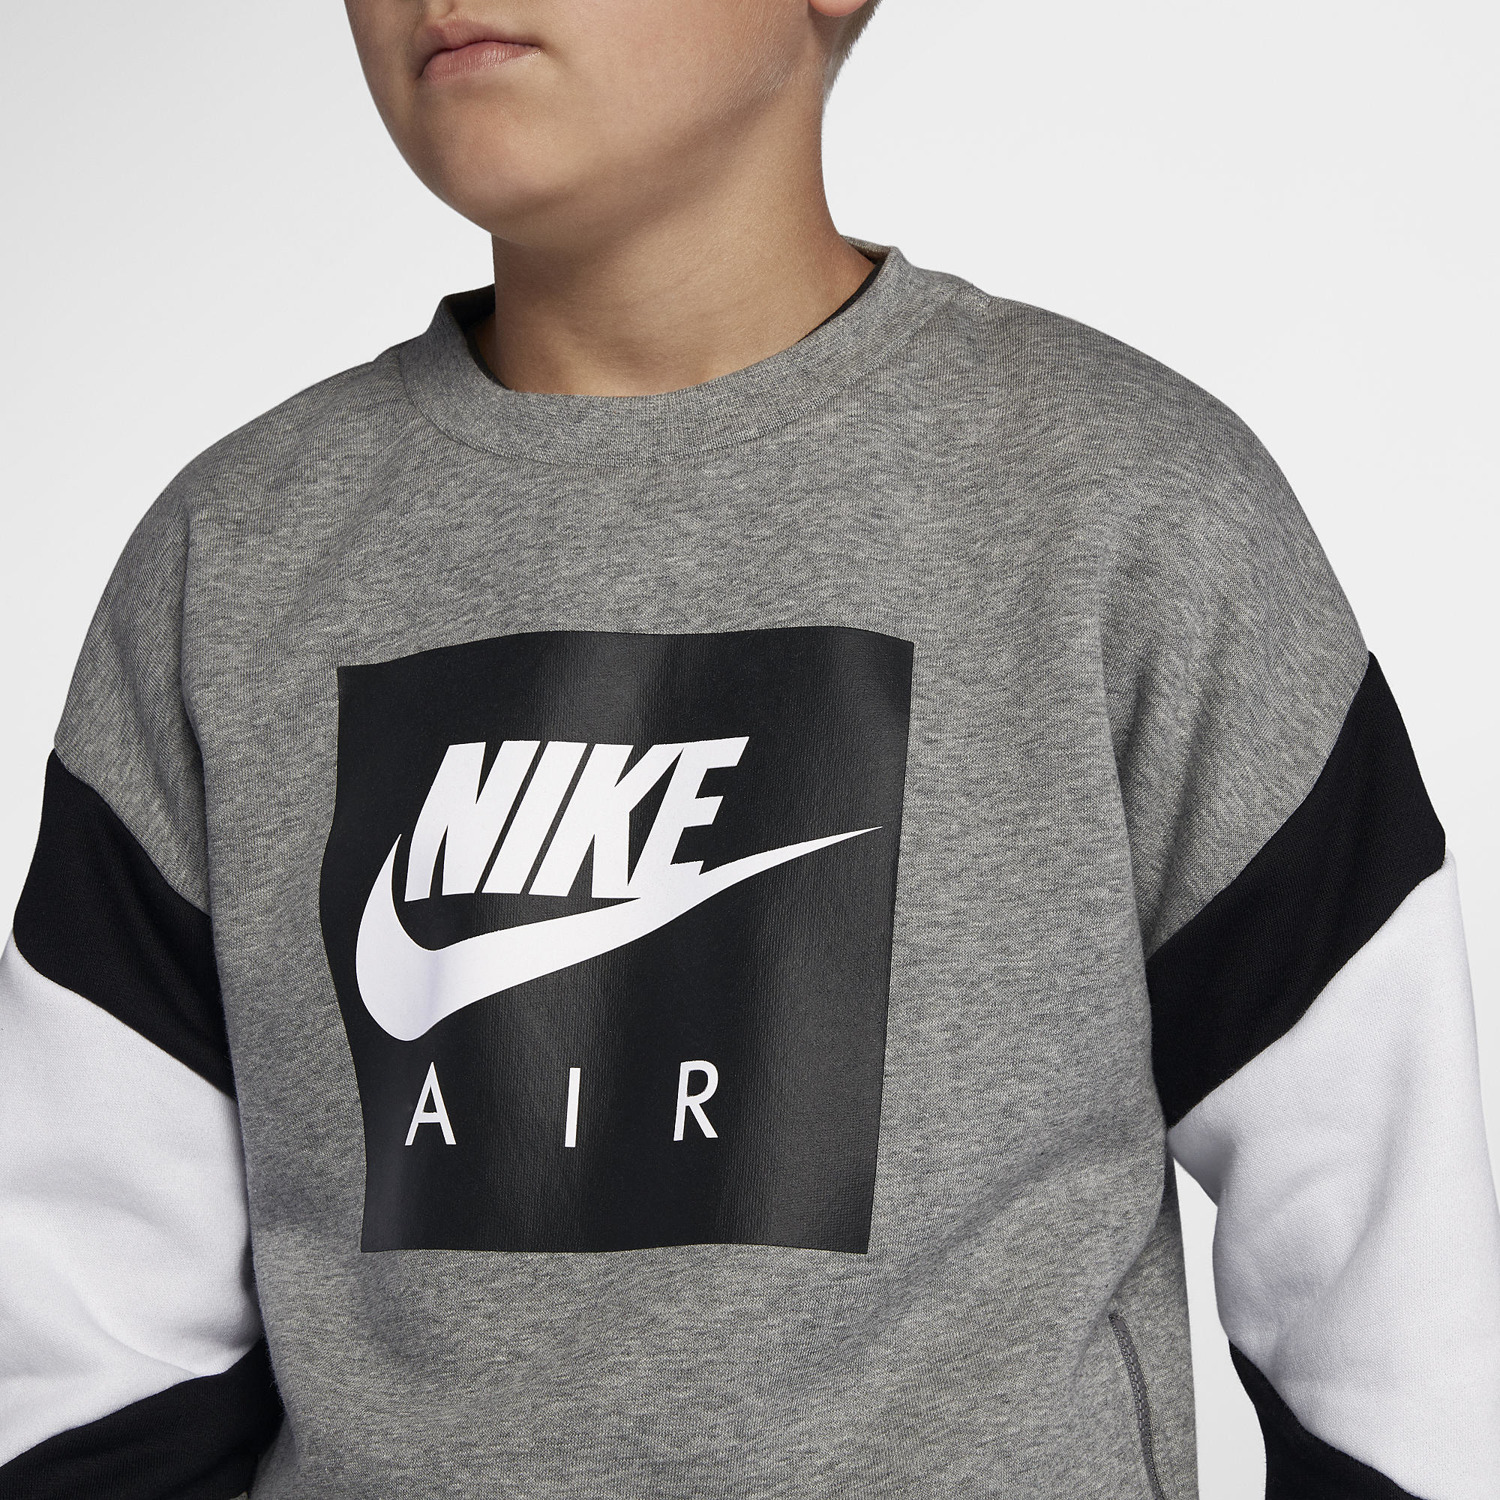 Bluzka juniorska Nike Air AJ0114 063